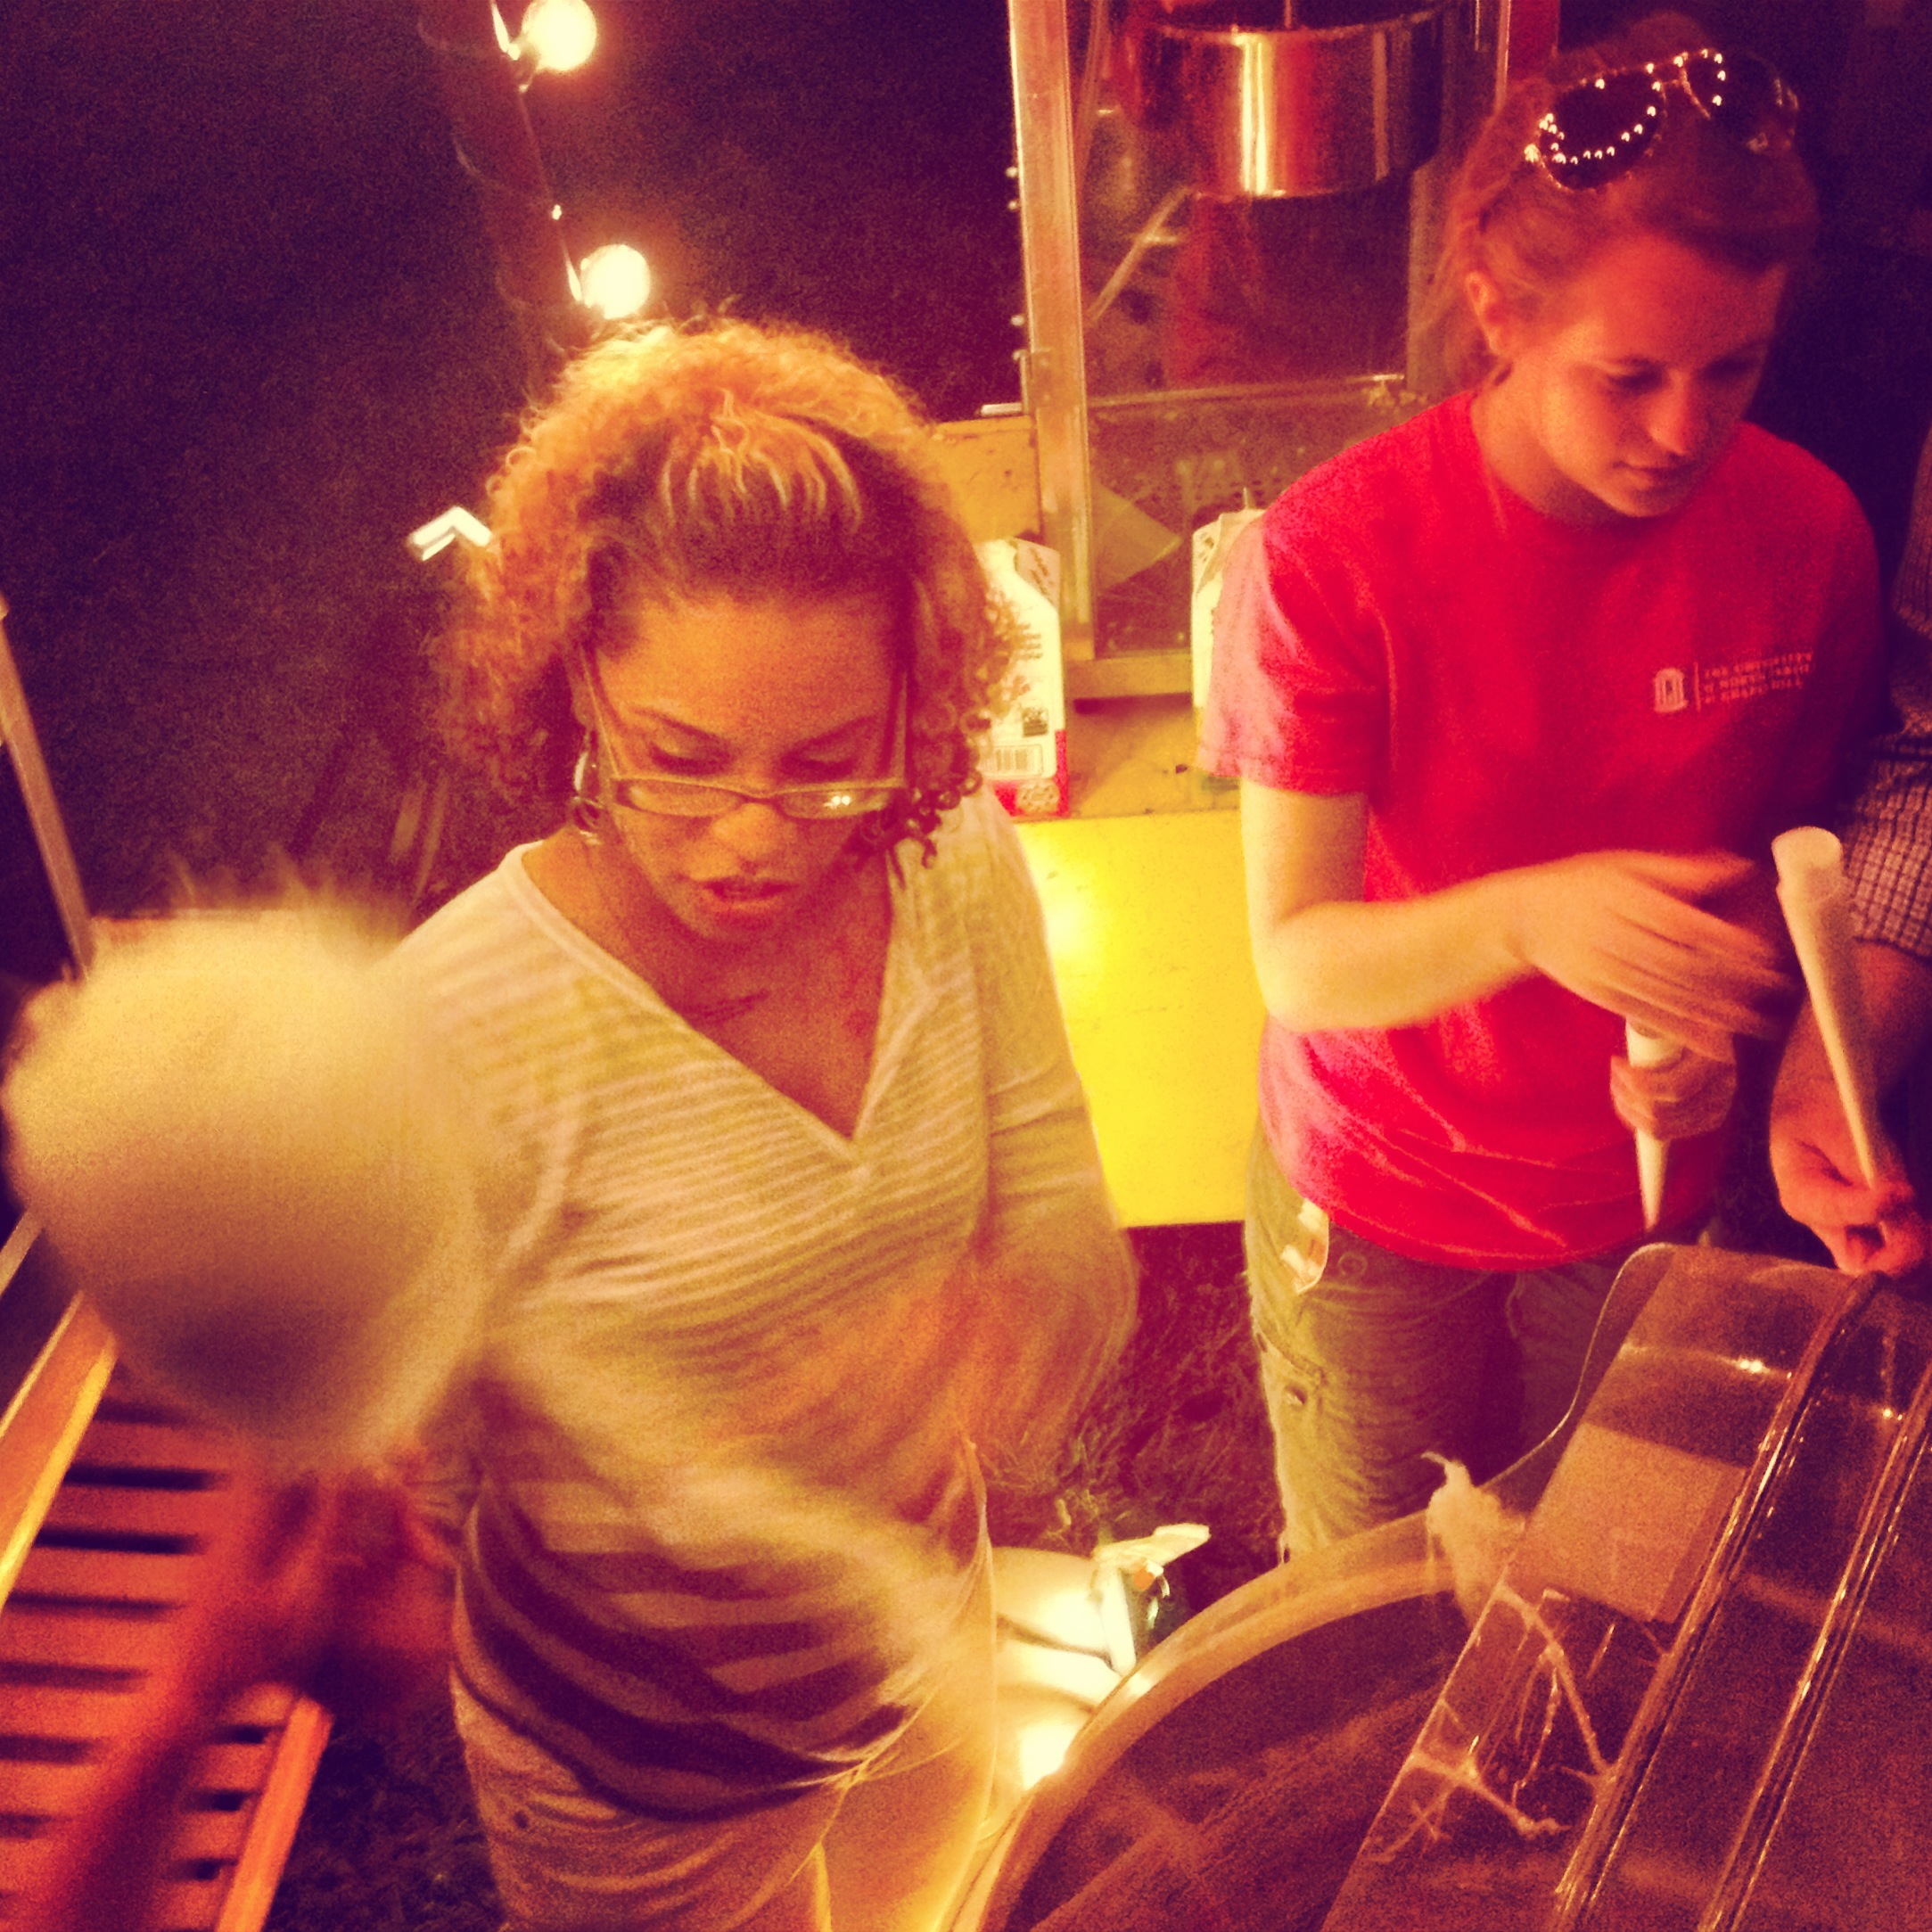 cotton-candy-making-0603.jpeg